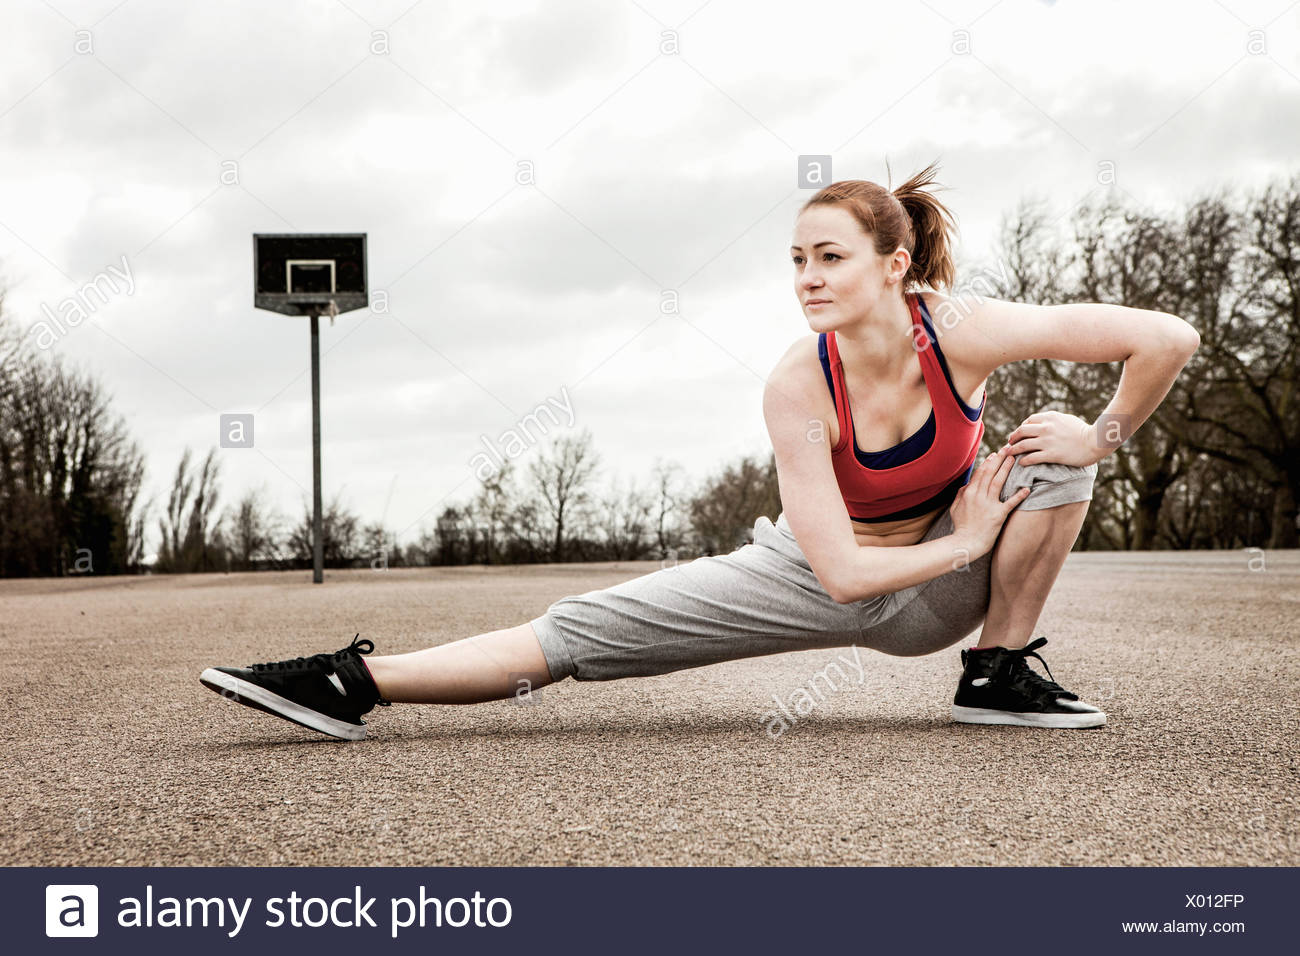 Woman stretching left leg and bending right leg on court - Stock Image